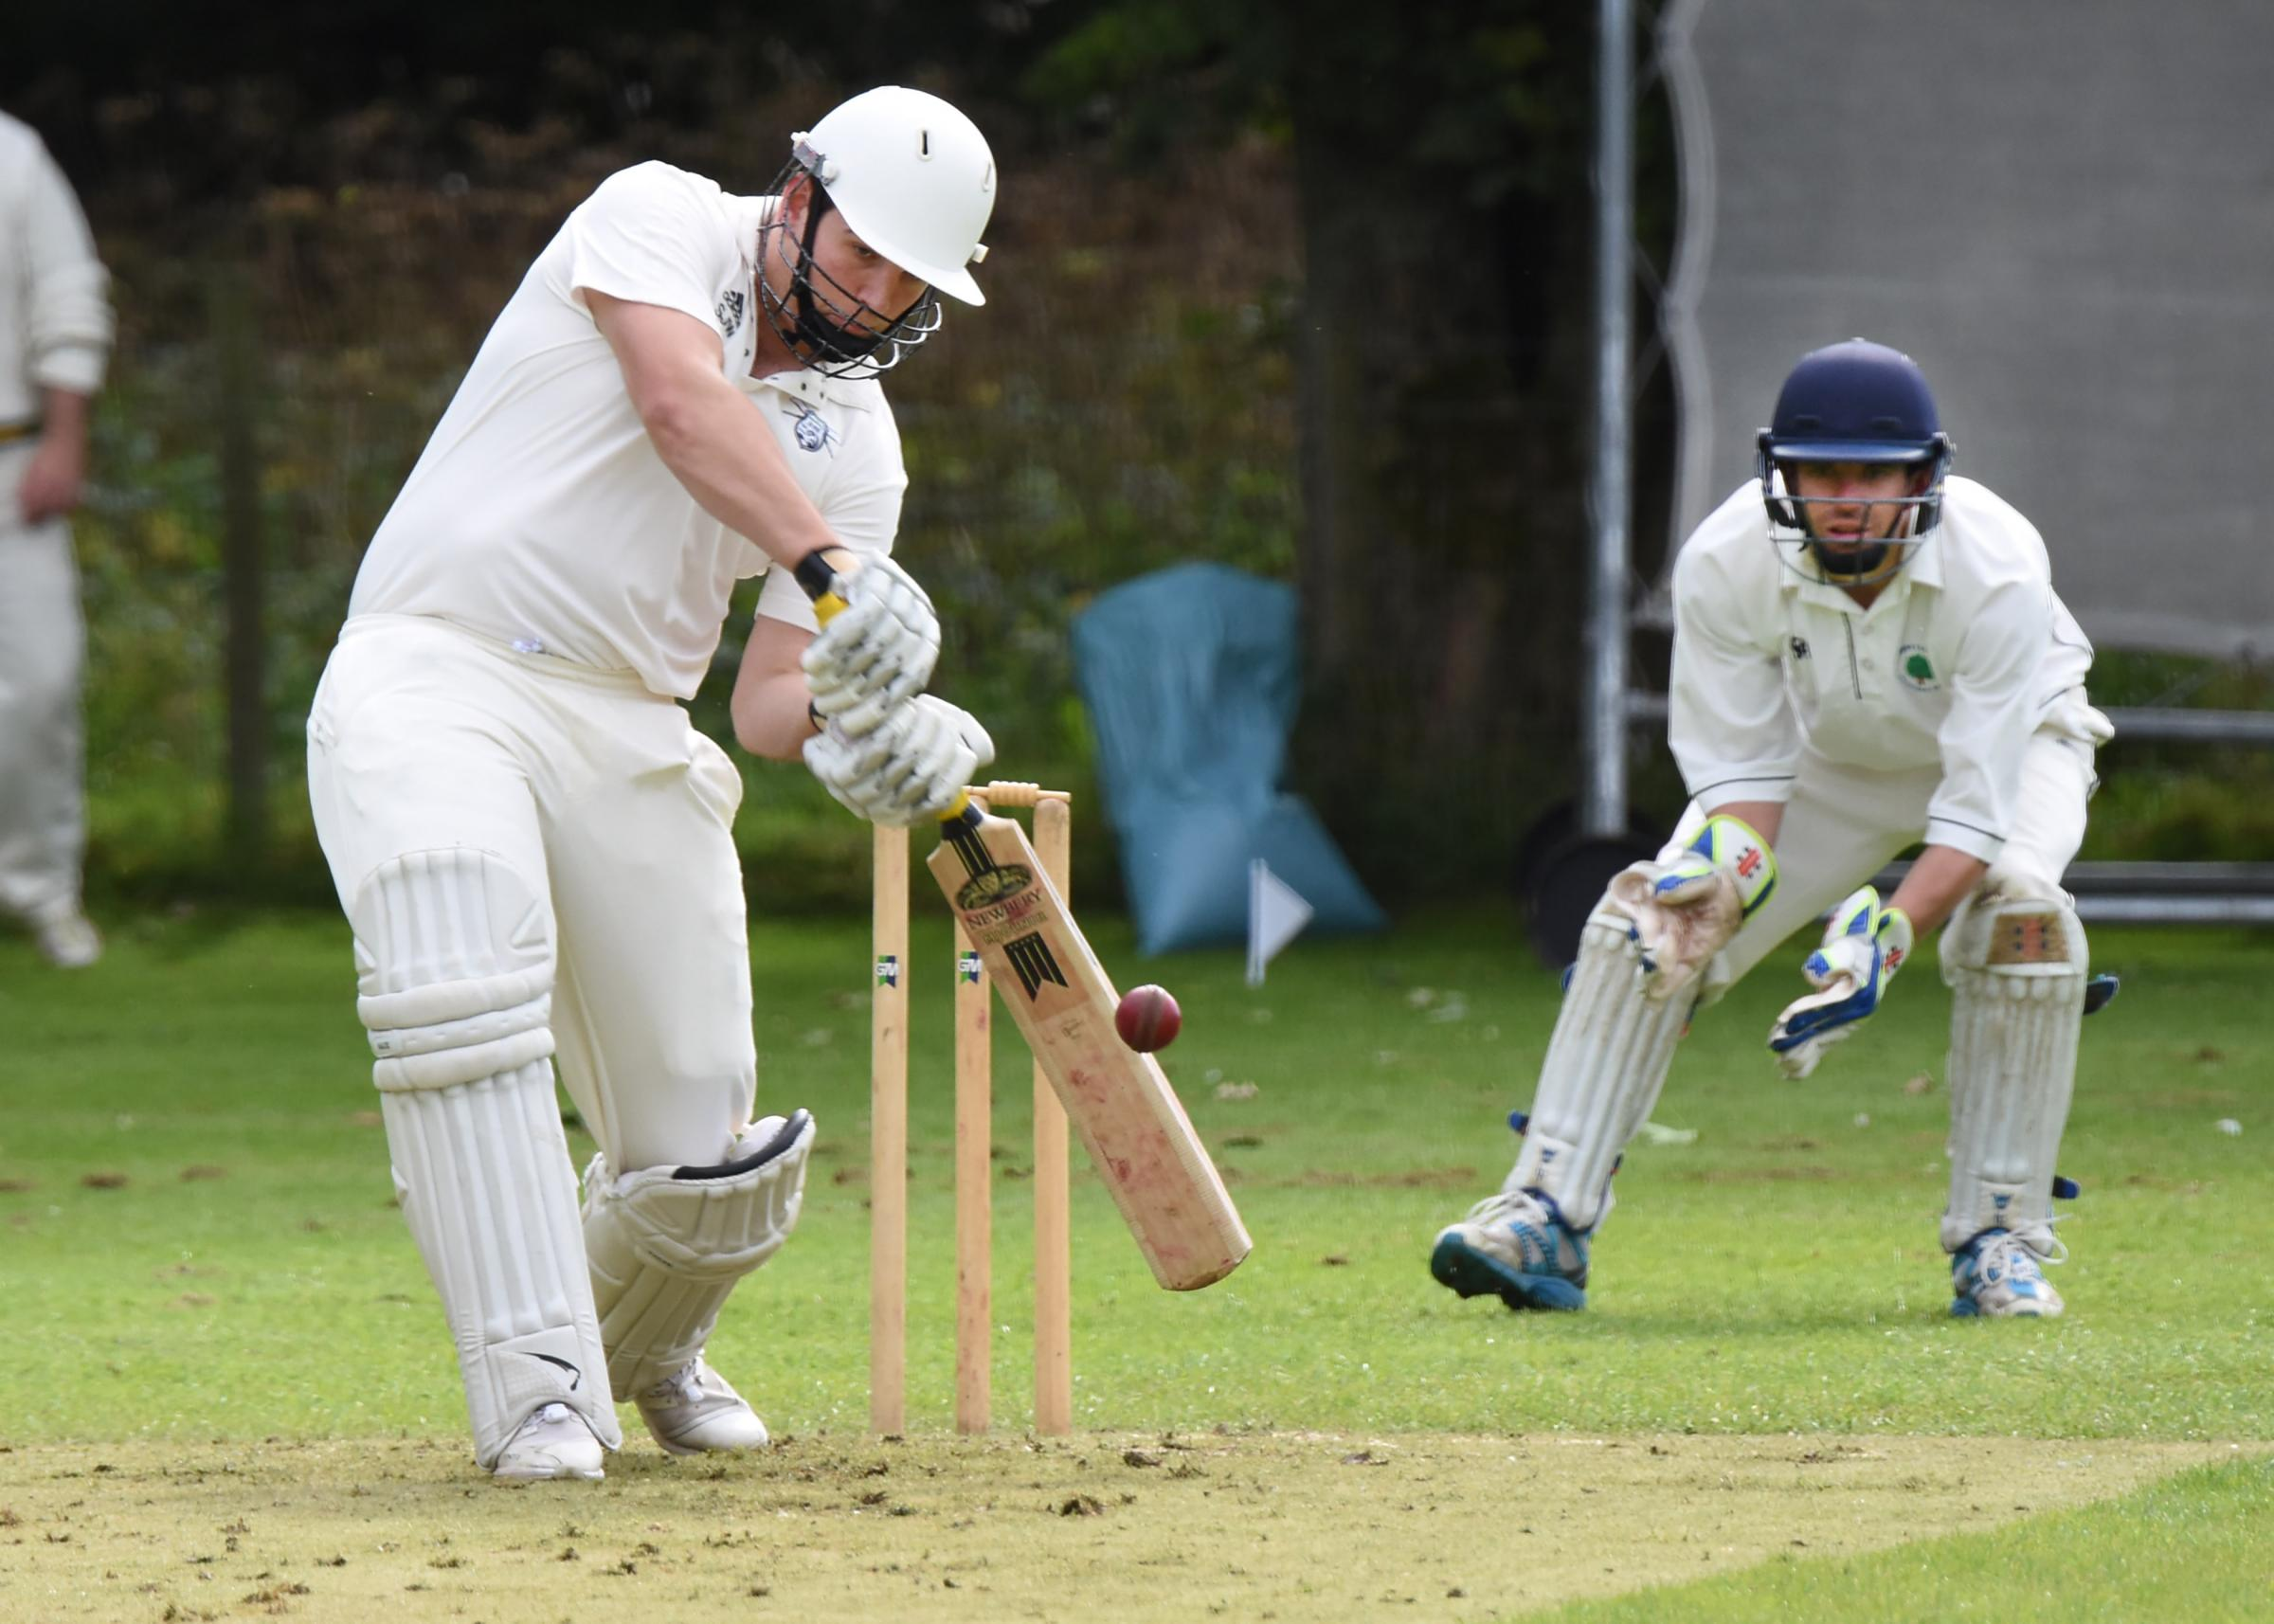 WHAT A WAY TO WIN IT: Simon Walgate, who smashed a straight six in the final over to win Thixendale's game against title rivals Pocklington in Foss Evening League division three